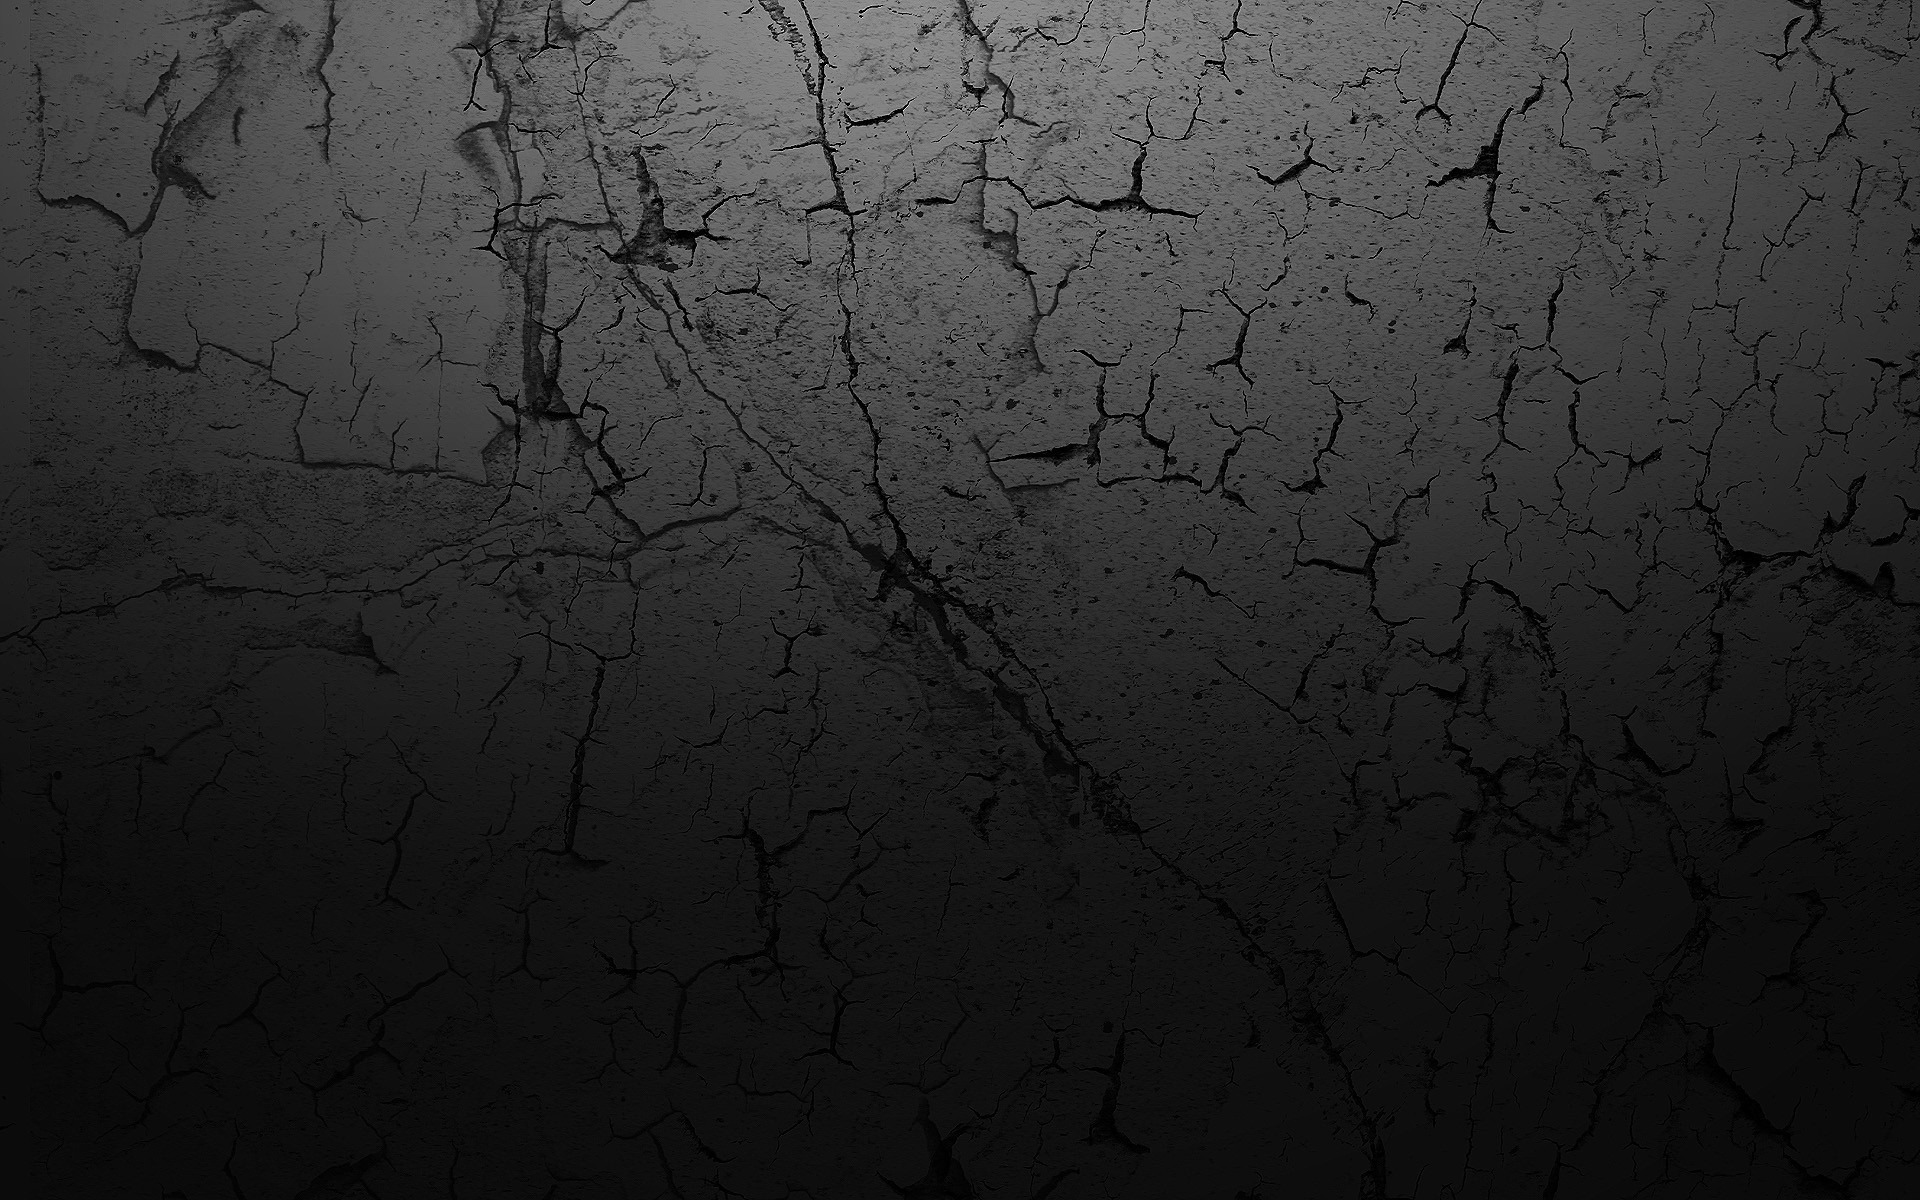 Cracked Wallpaper Background 181.73 Kb